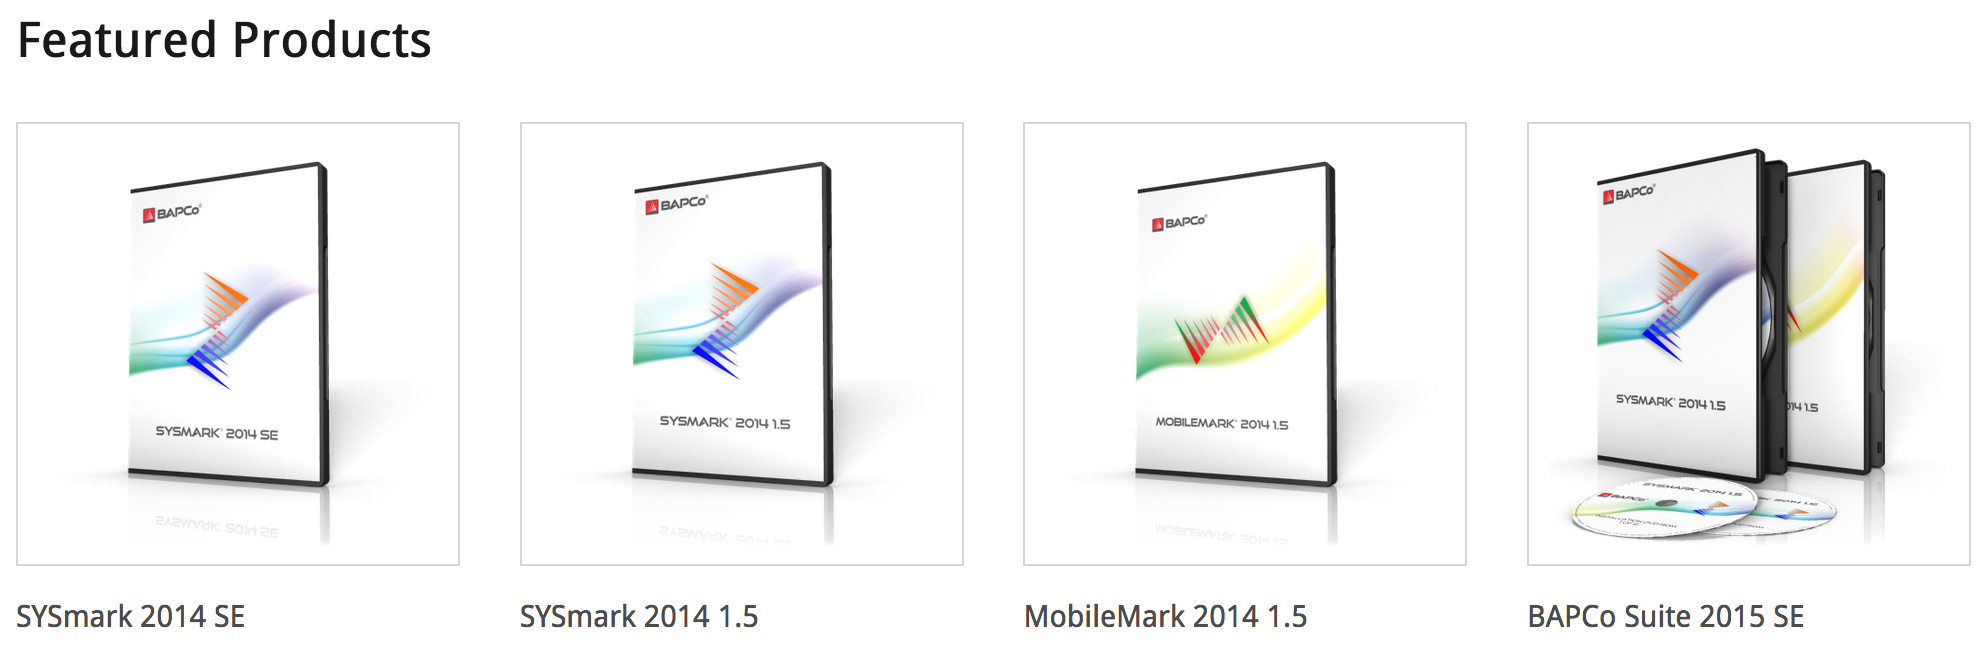 Need a Copy of BAPCo's SYSmark or MobileMark Benchmark for a Tender Submission?